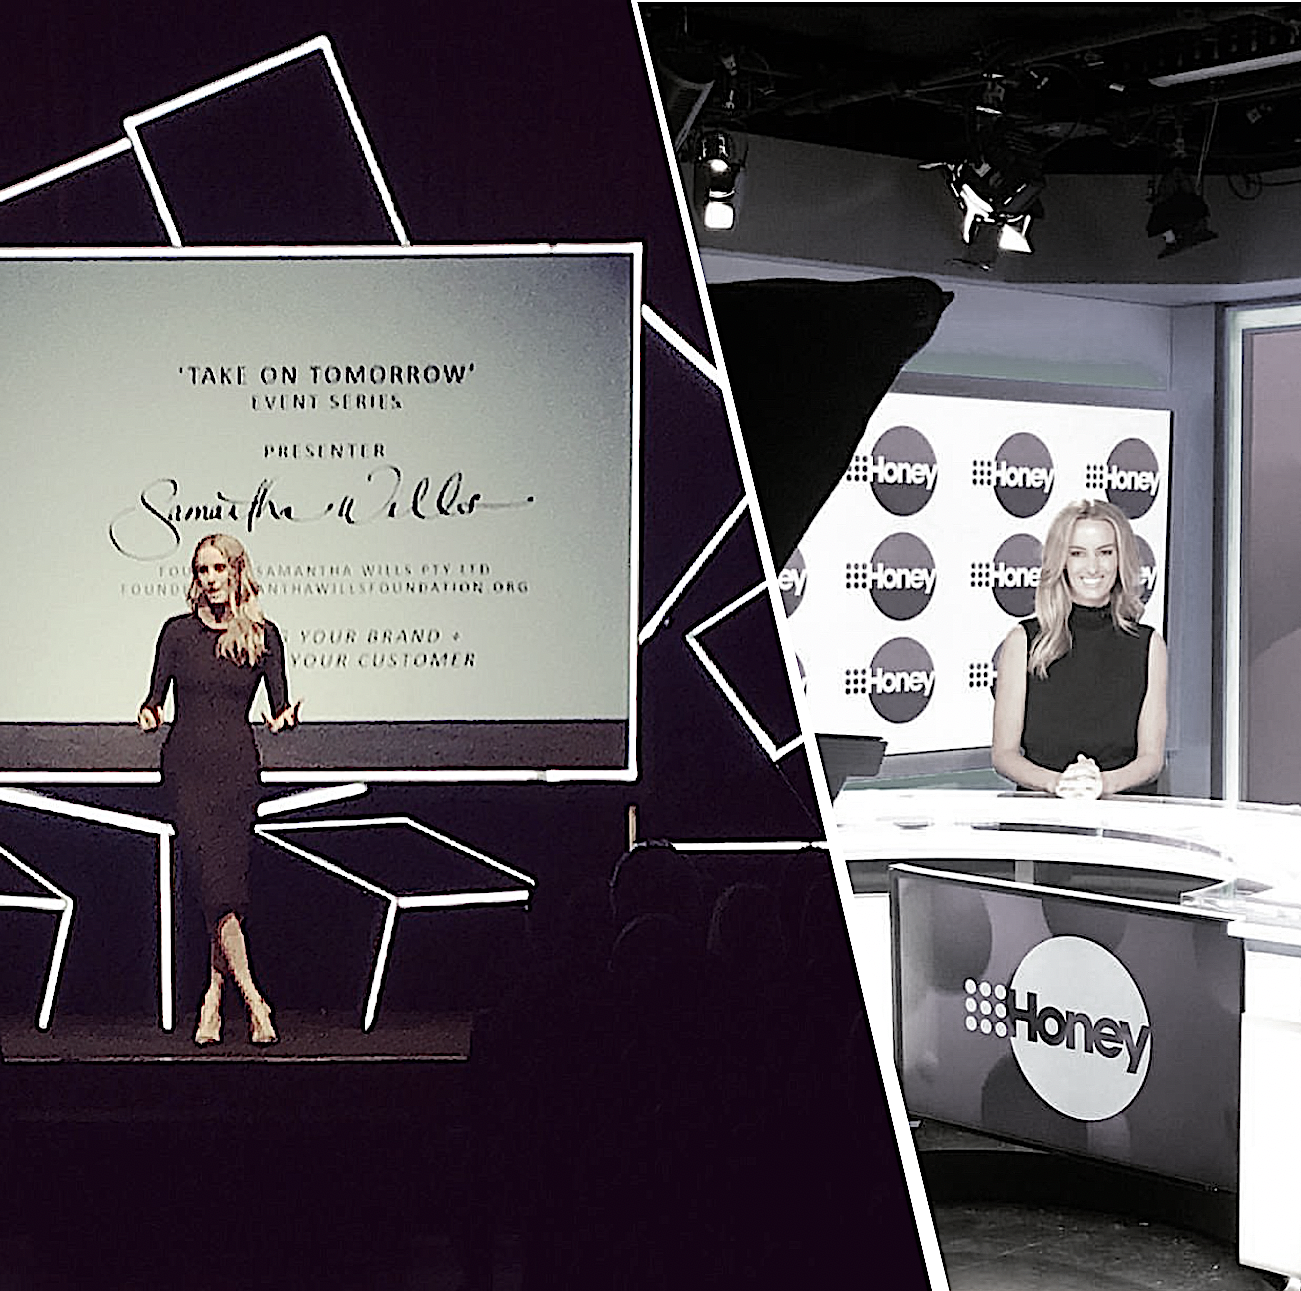 SAMANTHA WILLS:  LEFT,  Presenting the Keynote for WESTPAC Business Clients.  RIGHT , Talking business and branding on NINE Honey.